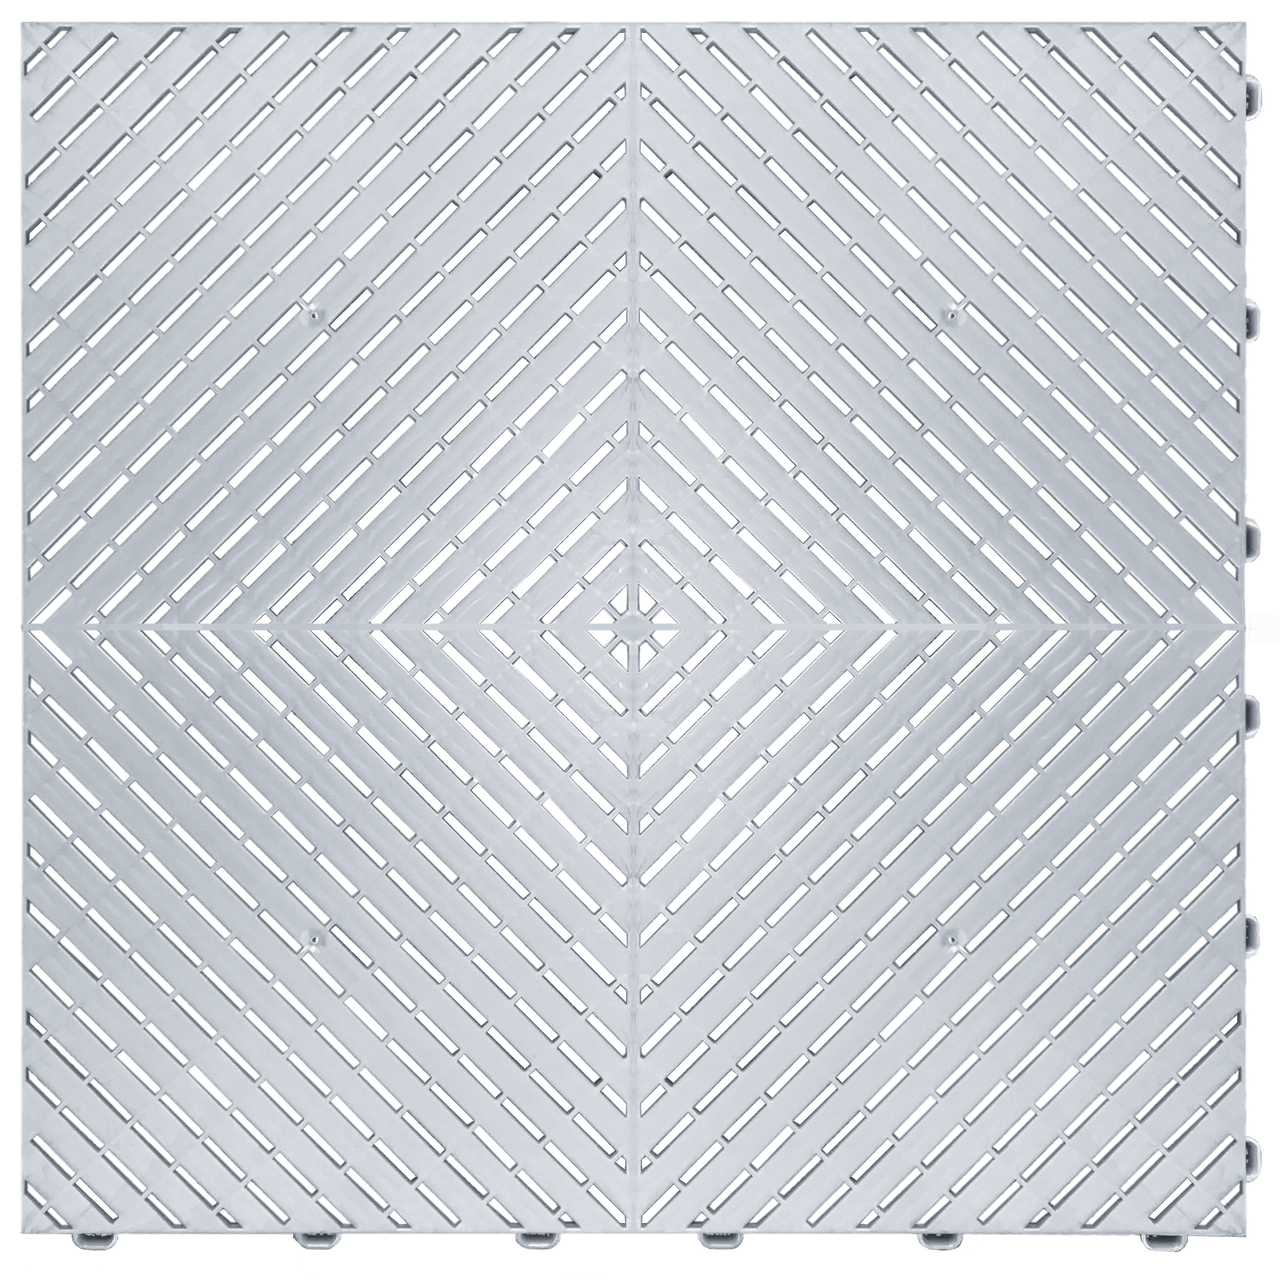 """""""Pearl Silver"""" RibTrax (RT) Smooth by SwissTrax - SALE PRICE ONLY $3.96 PER SQ FT Tile Size: 15.75"""" x 15.75"""" x .75 (1 Tile = 1.72 sq ft)"""